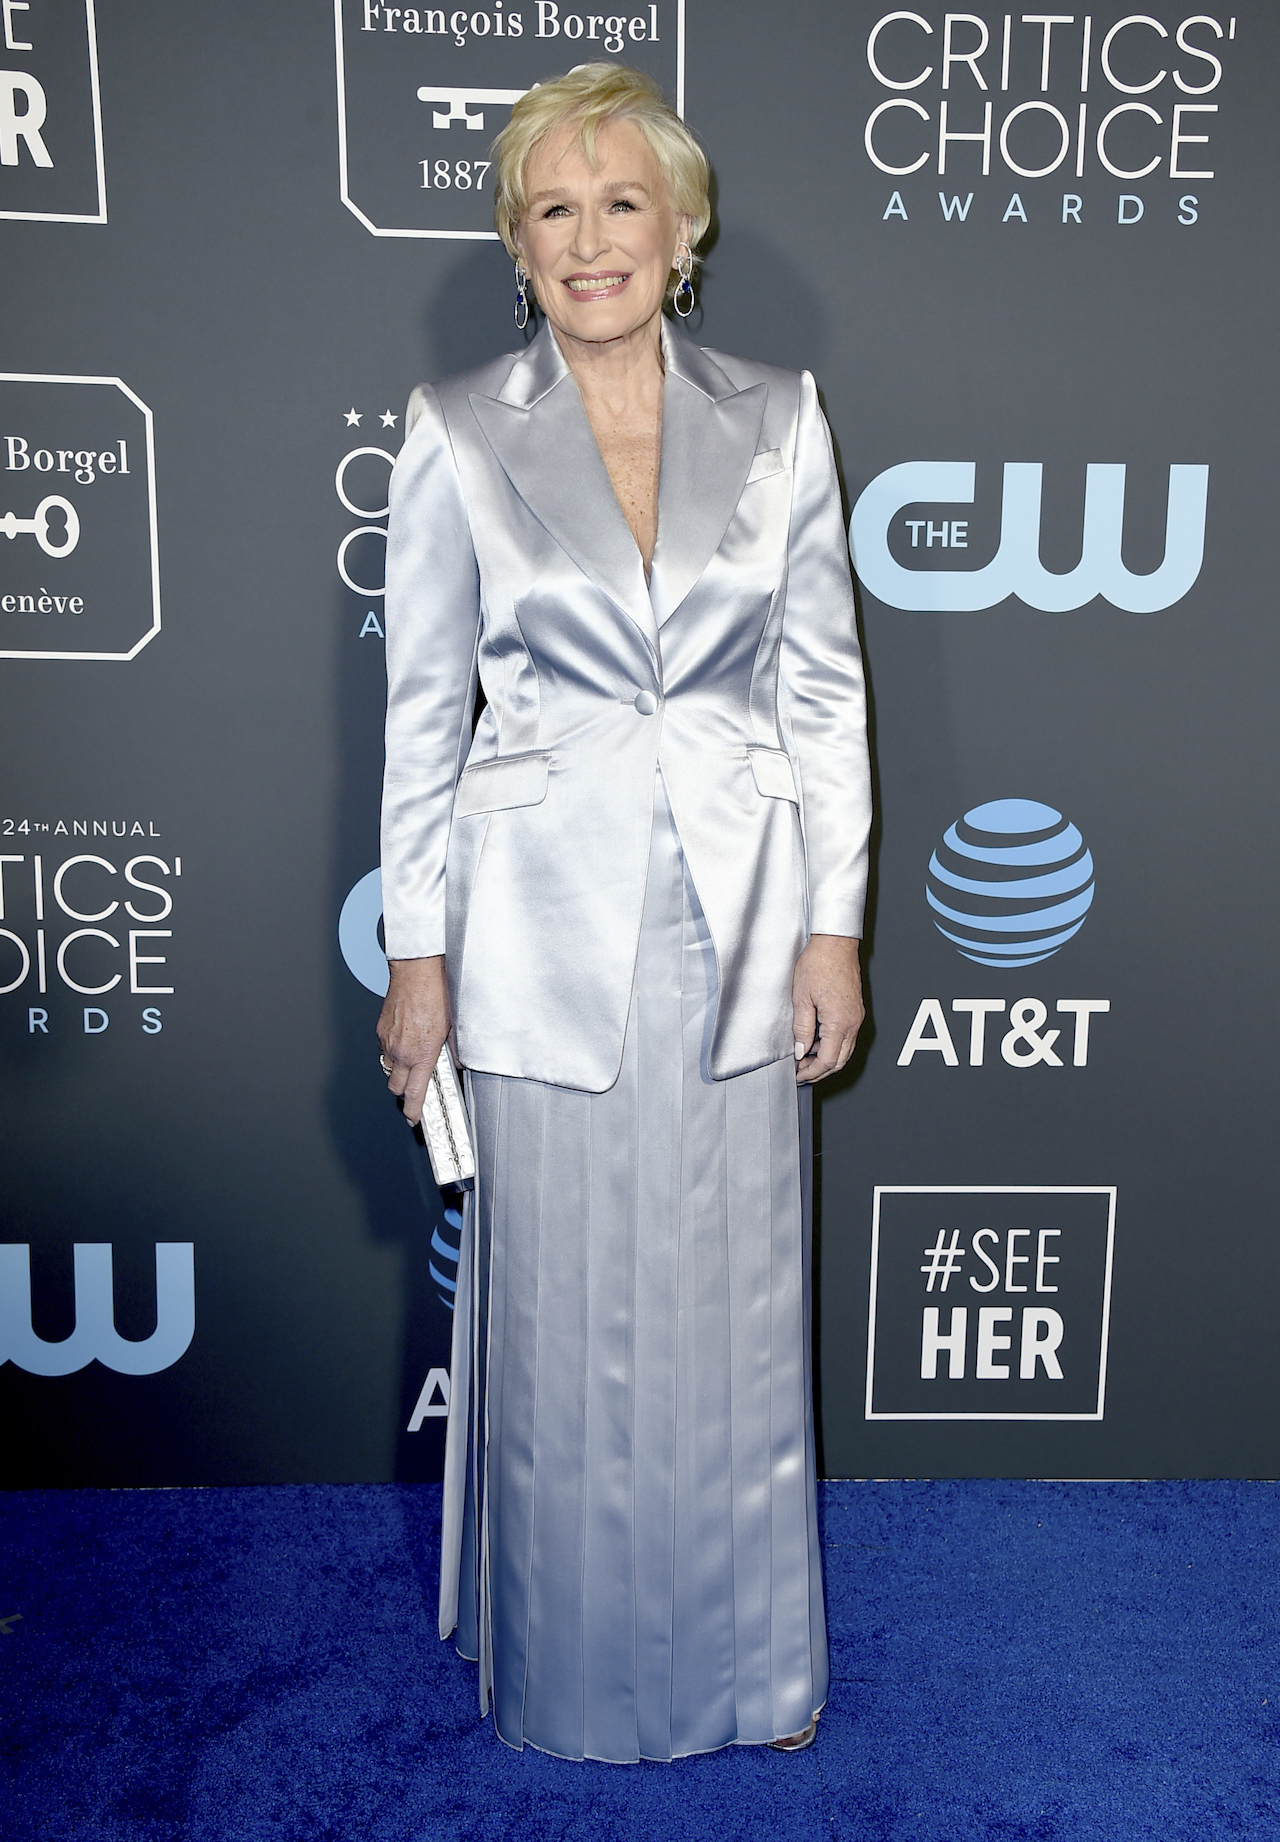 <div class='meta'><div class='origin-logo' data-origin='AP'></div><span class='caption-text' data-credit='Jordan Strauss/Invision/AP'>Glenn Close arrives at the 24th annual Critics' Choice Awards on Sunday, Jan. 13, 2019, at the Barker Hangar in Santa Monica, Calif.</span></div>